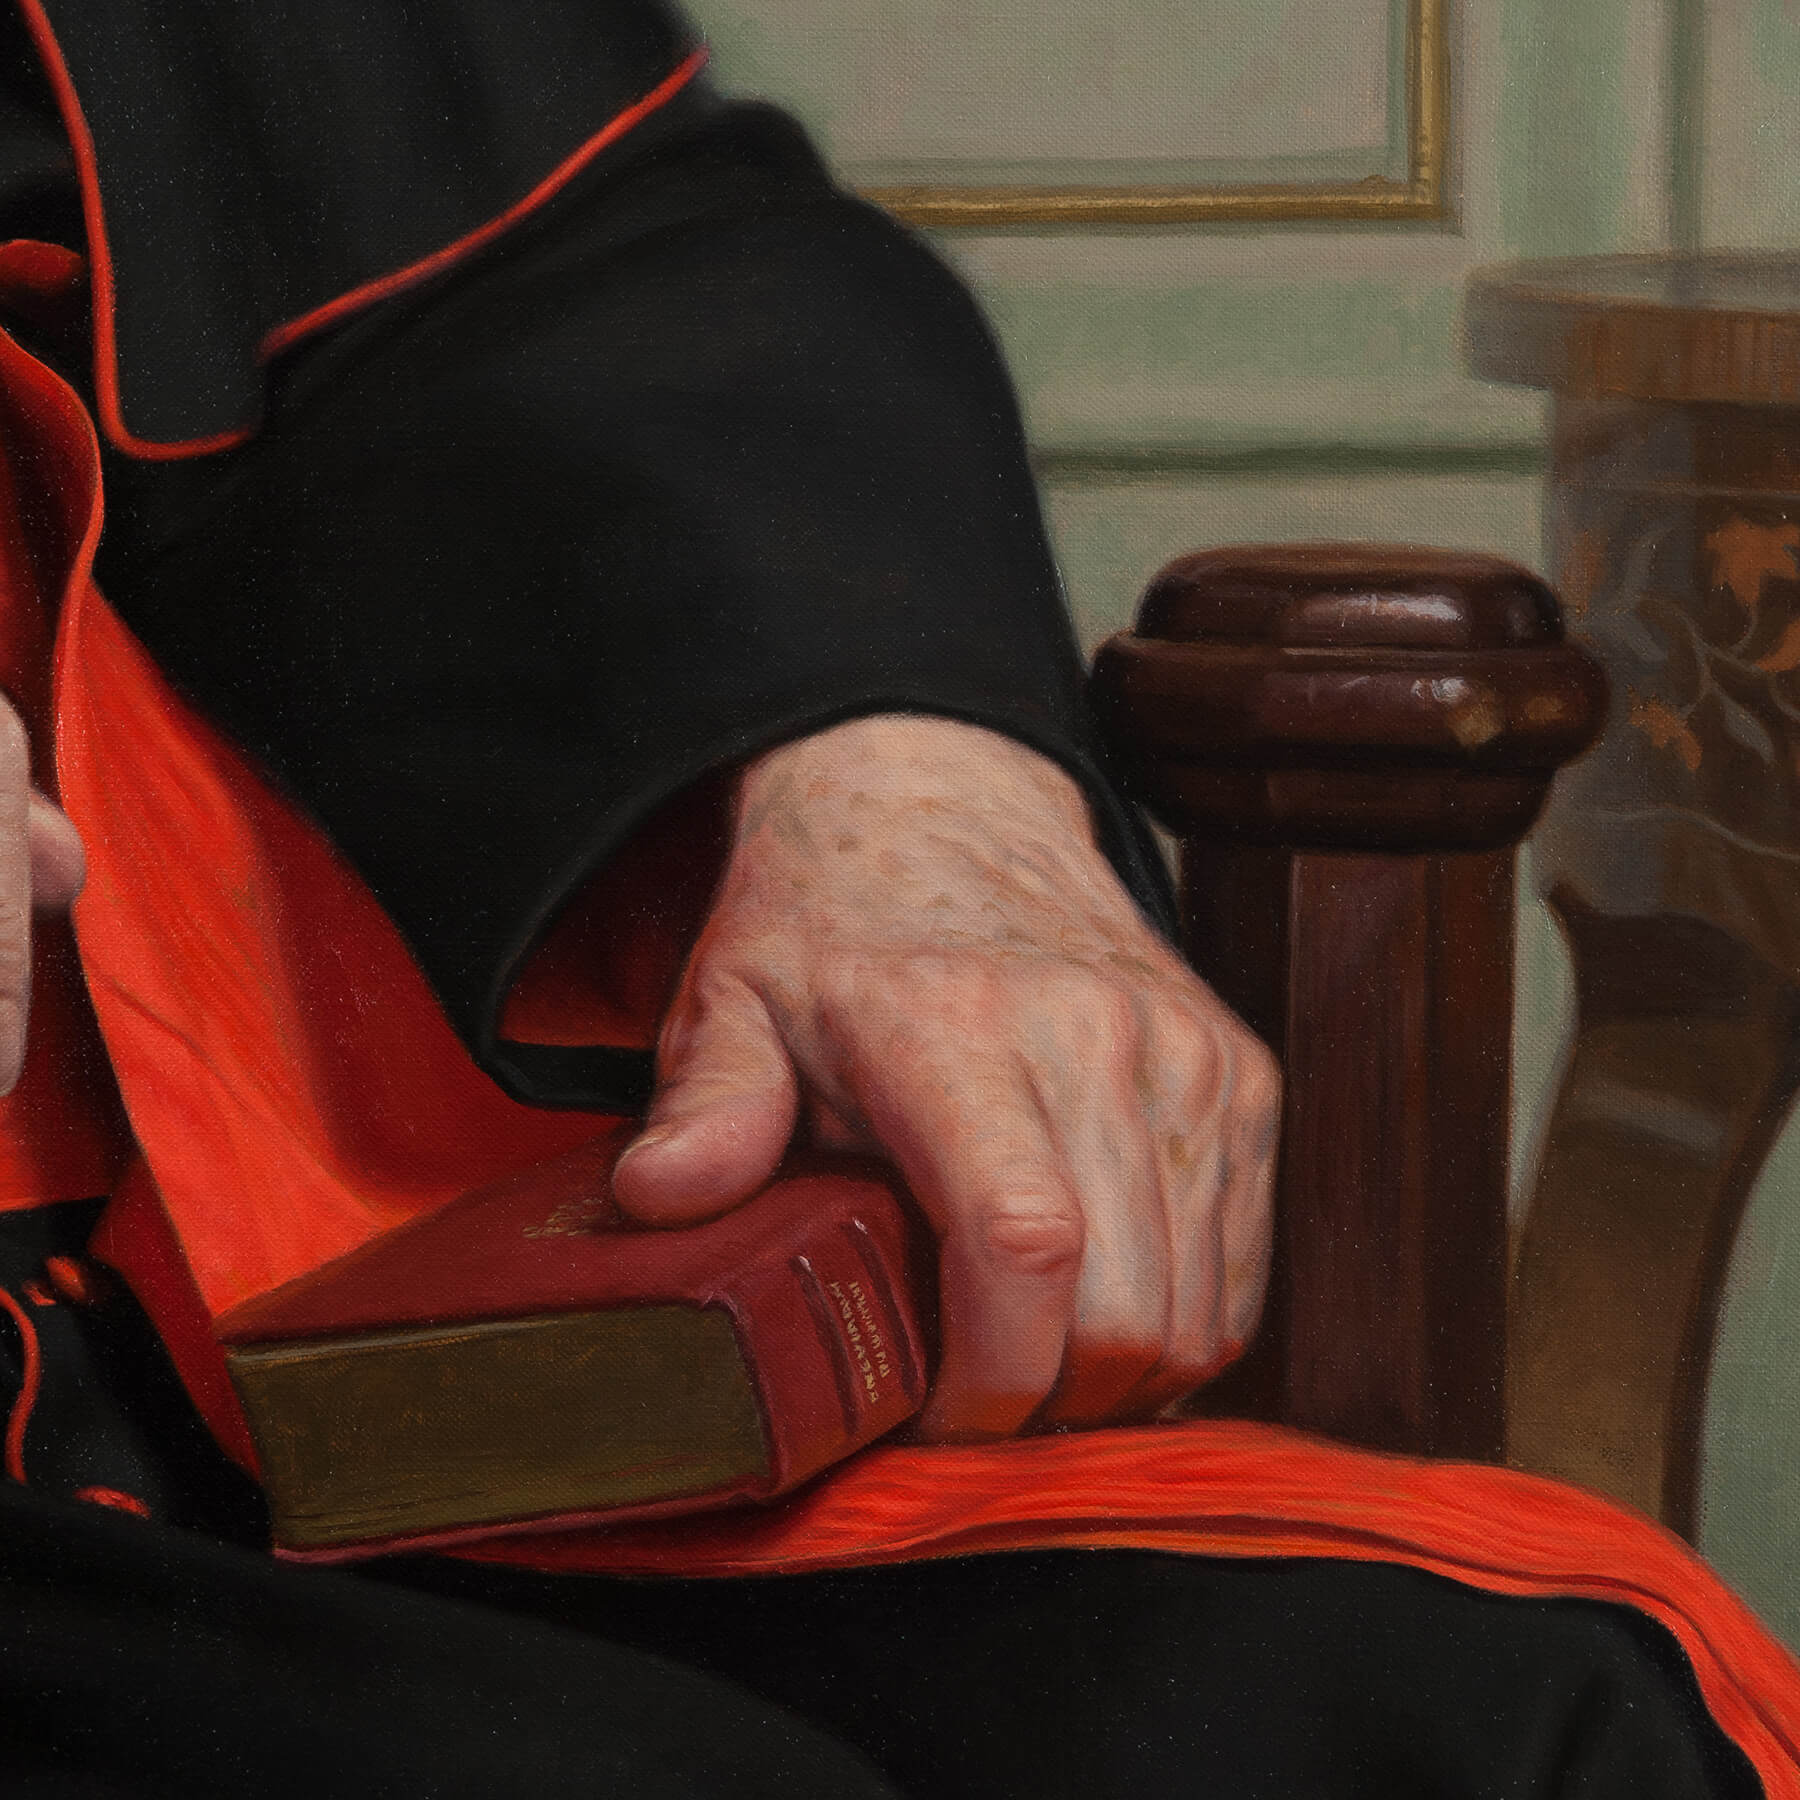 Hand detail of Clergy for Commissioned Portrait Art